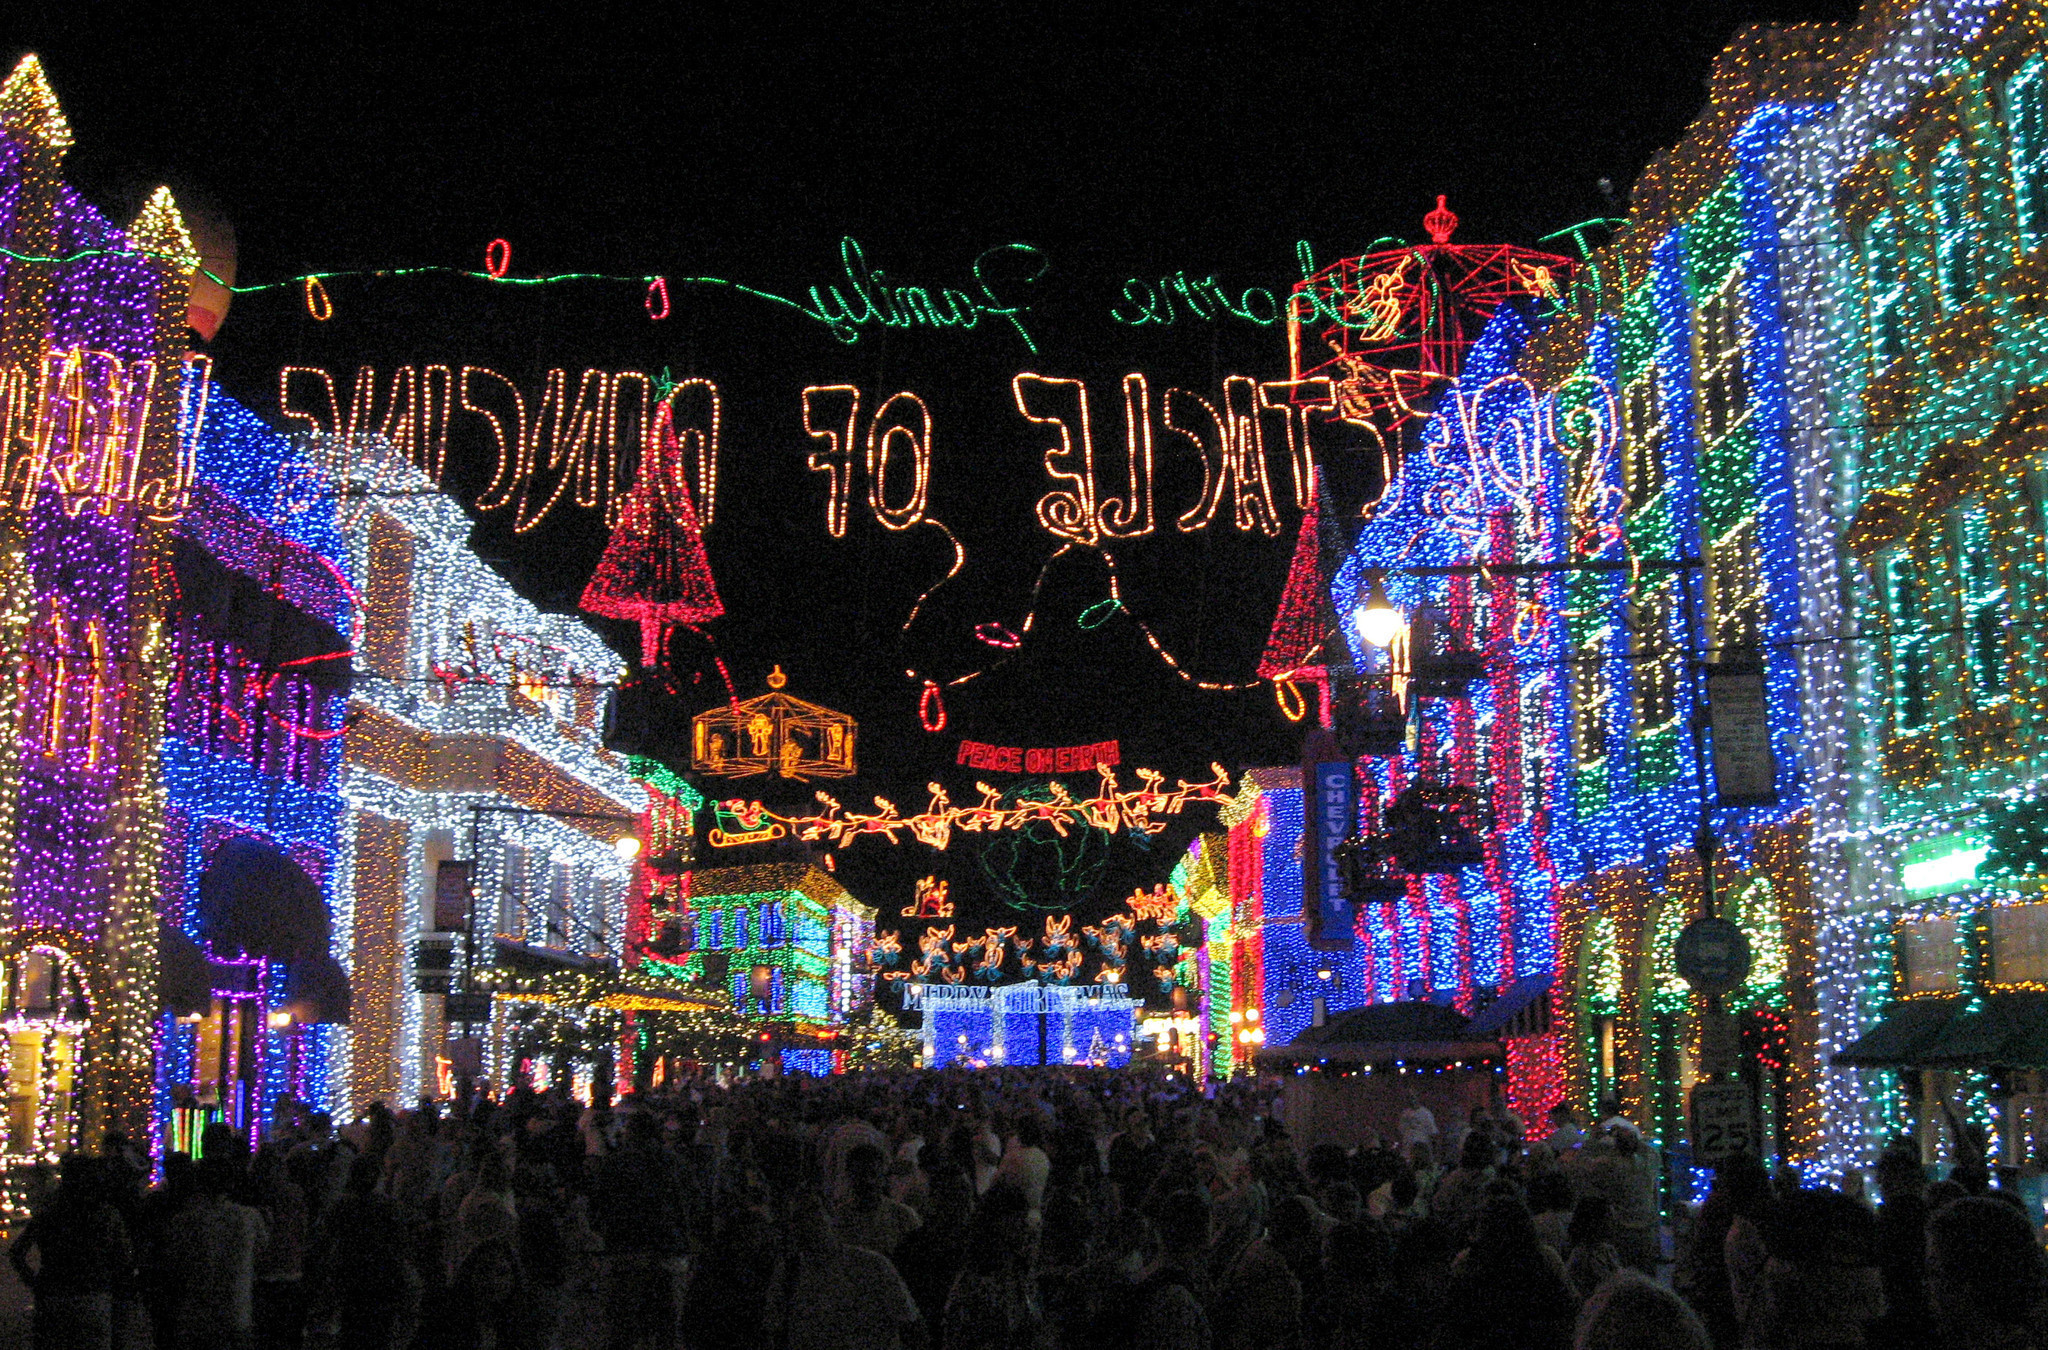 disney pulls plug on the osborne family spectacle of dancing lights orlando sentinel - When Does Disneyworld Decorate For Christmas